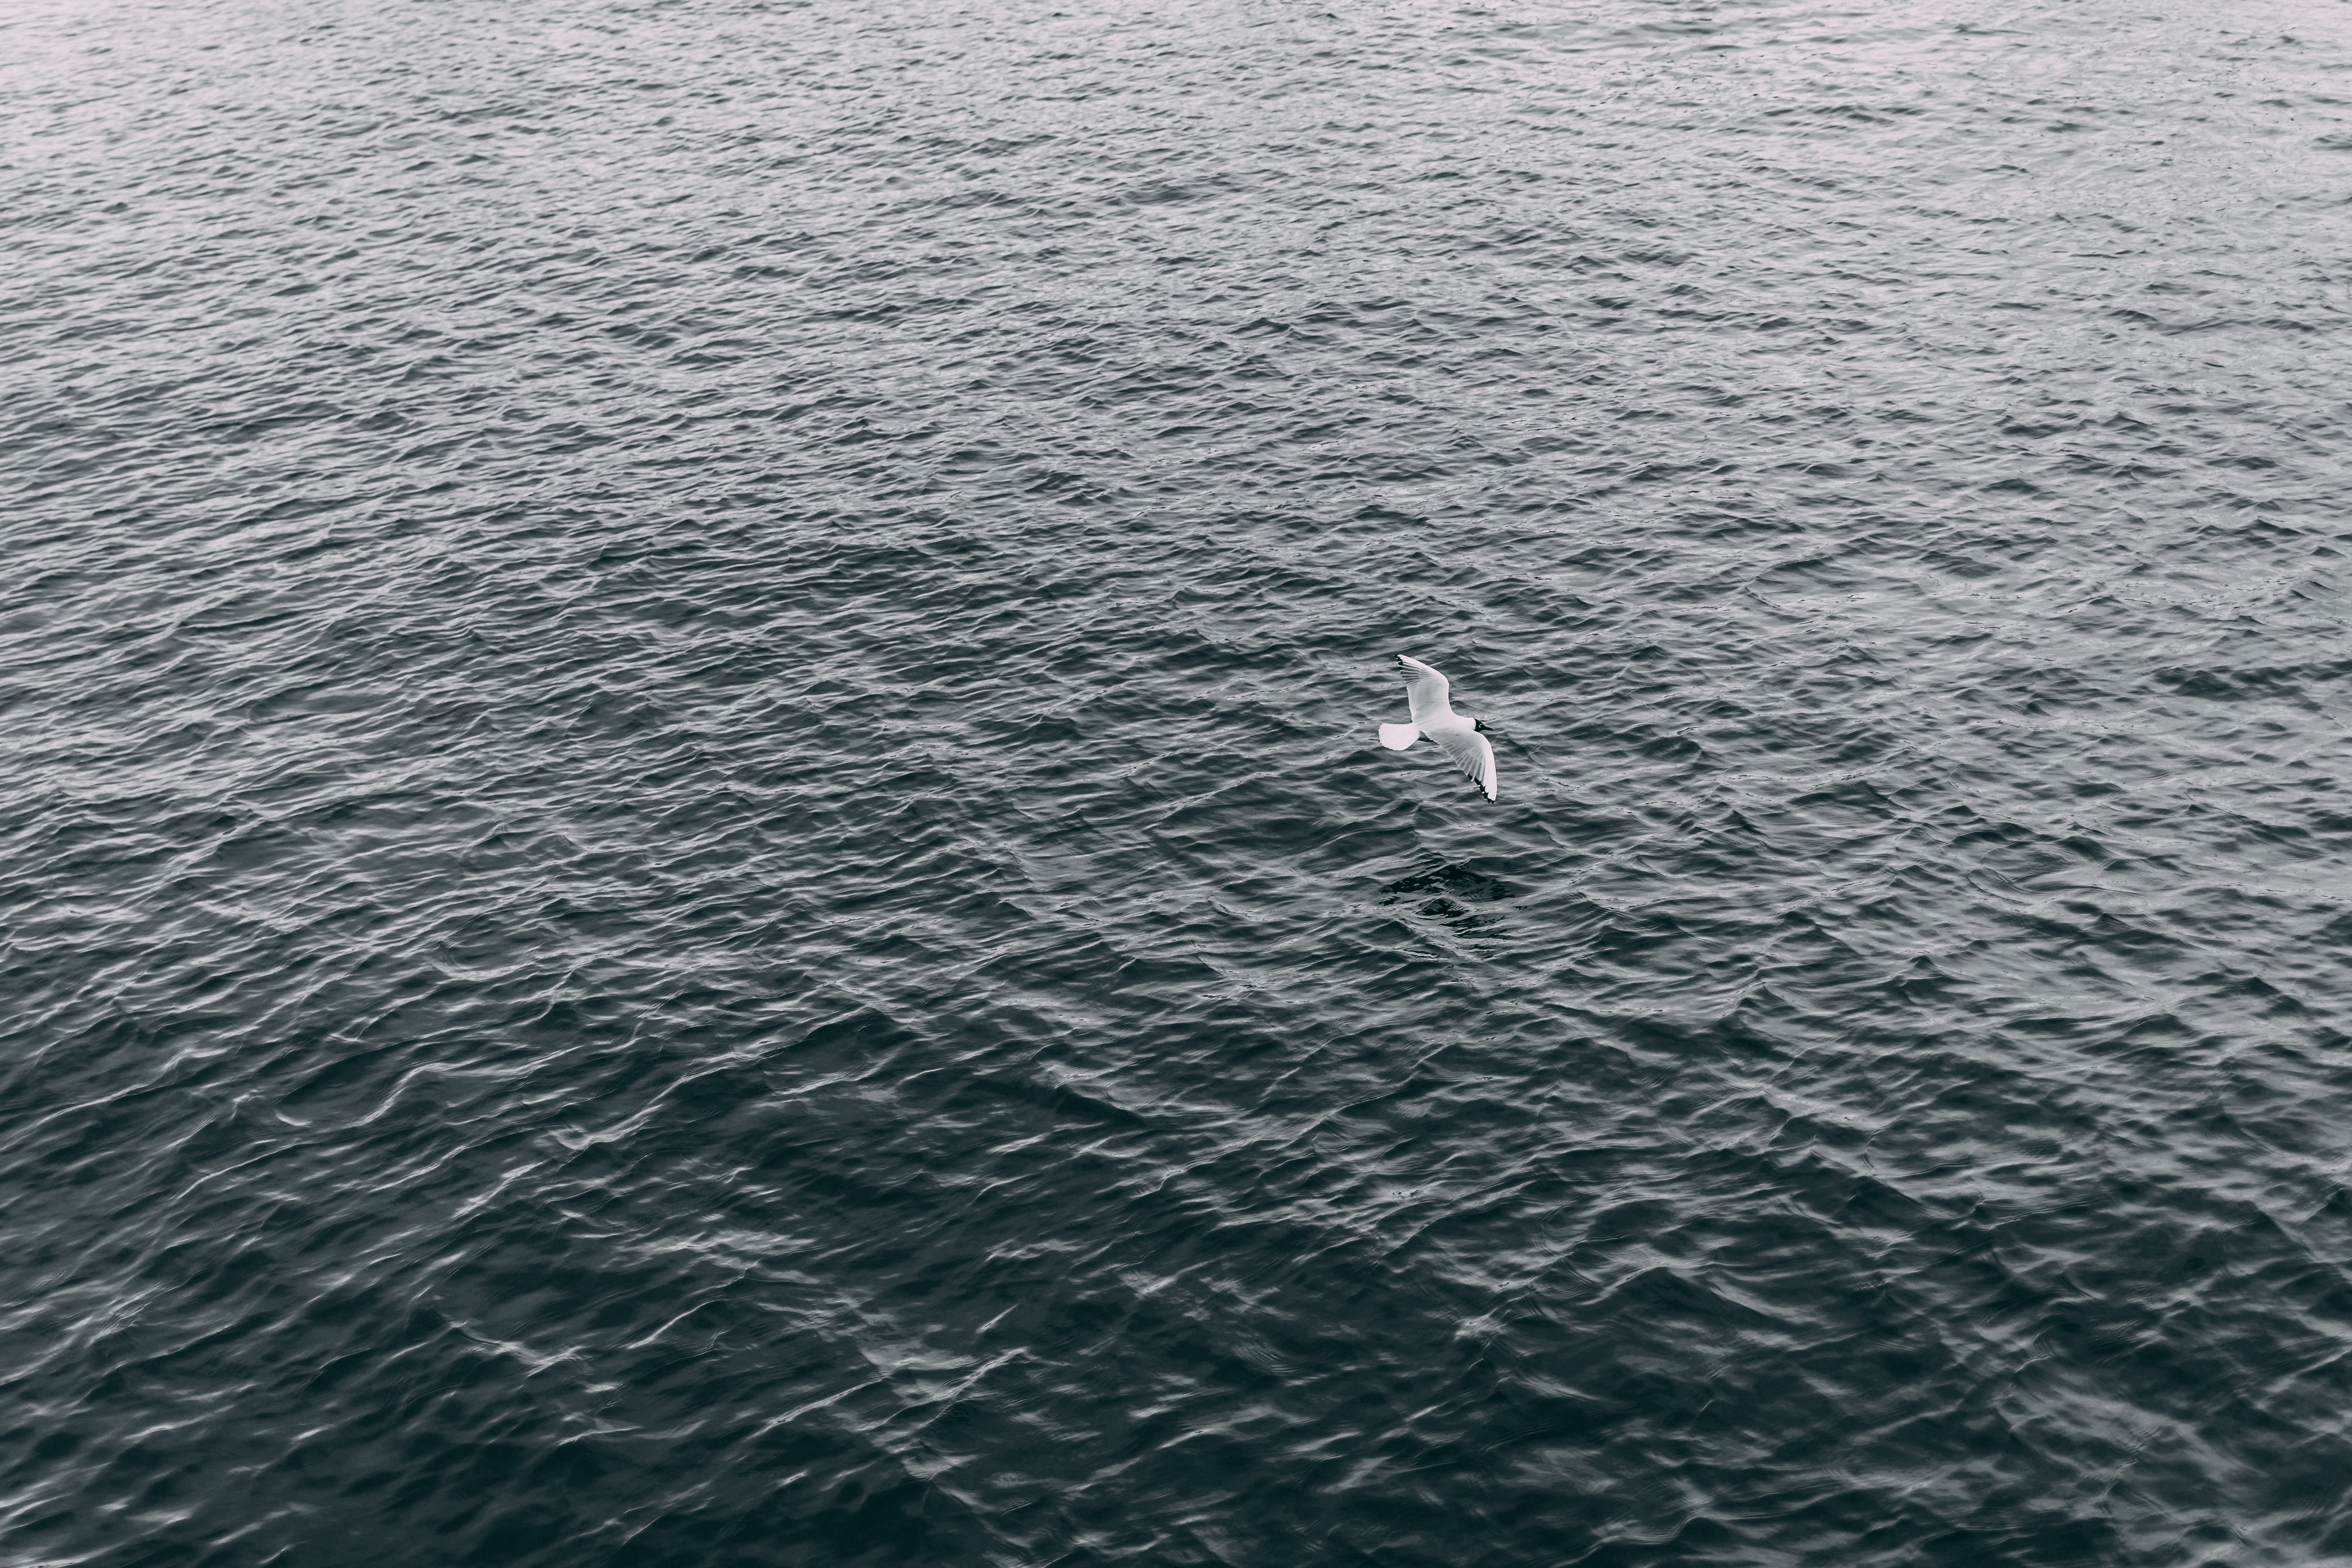 aerial photography of white bird flying over body of water at daytime